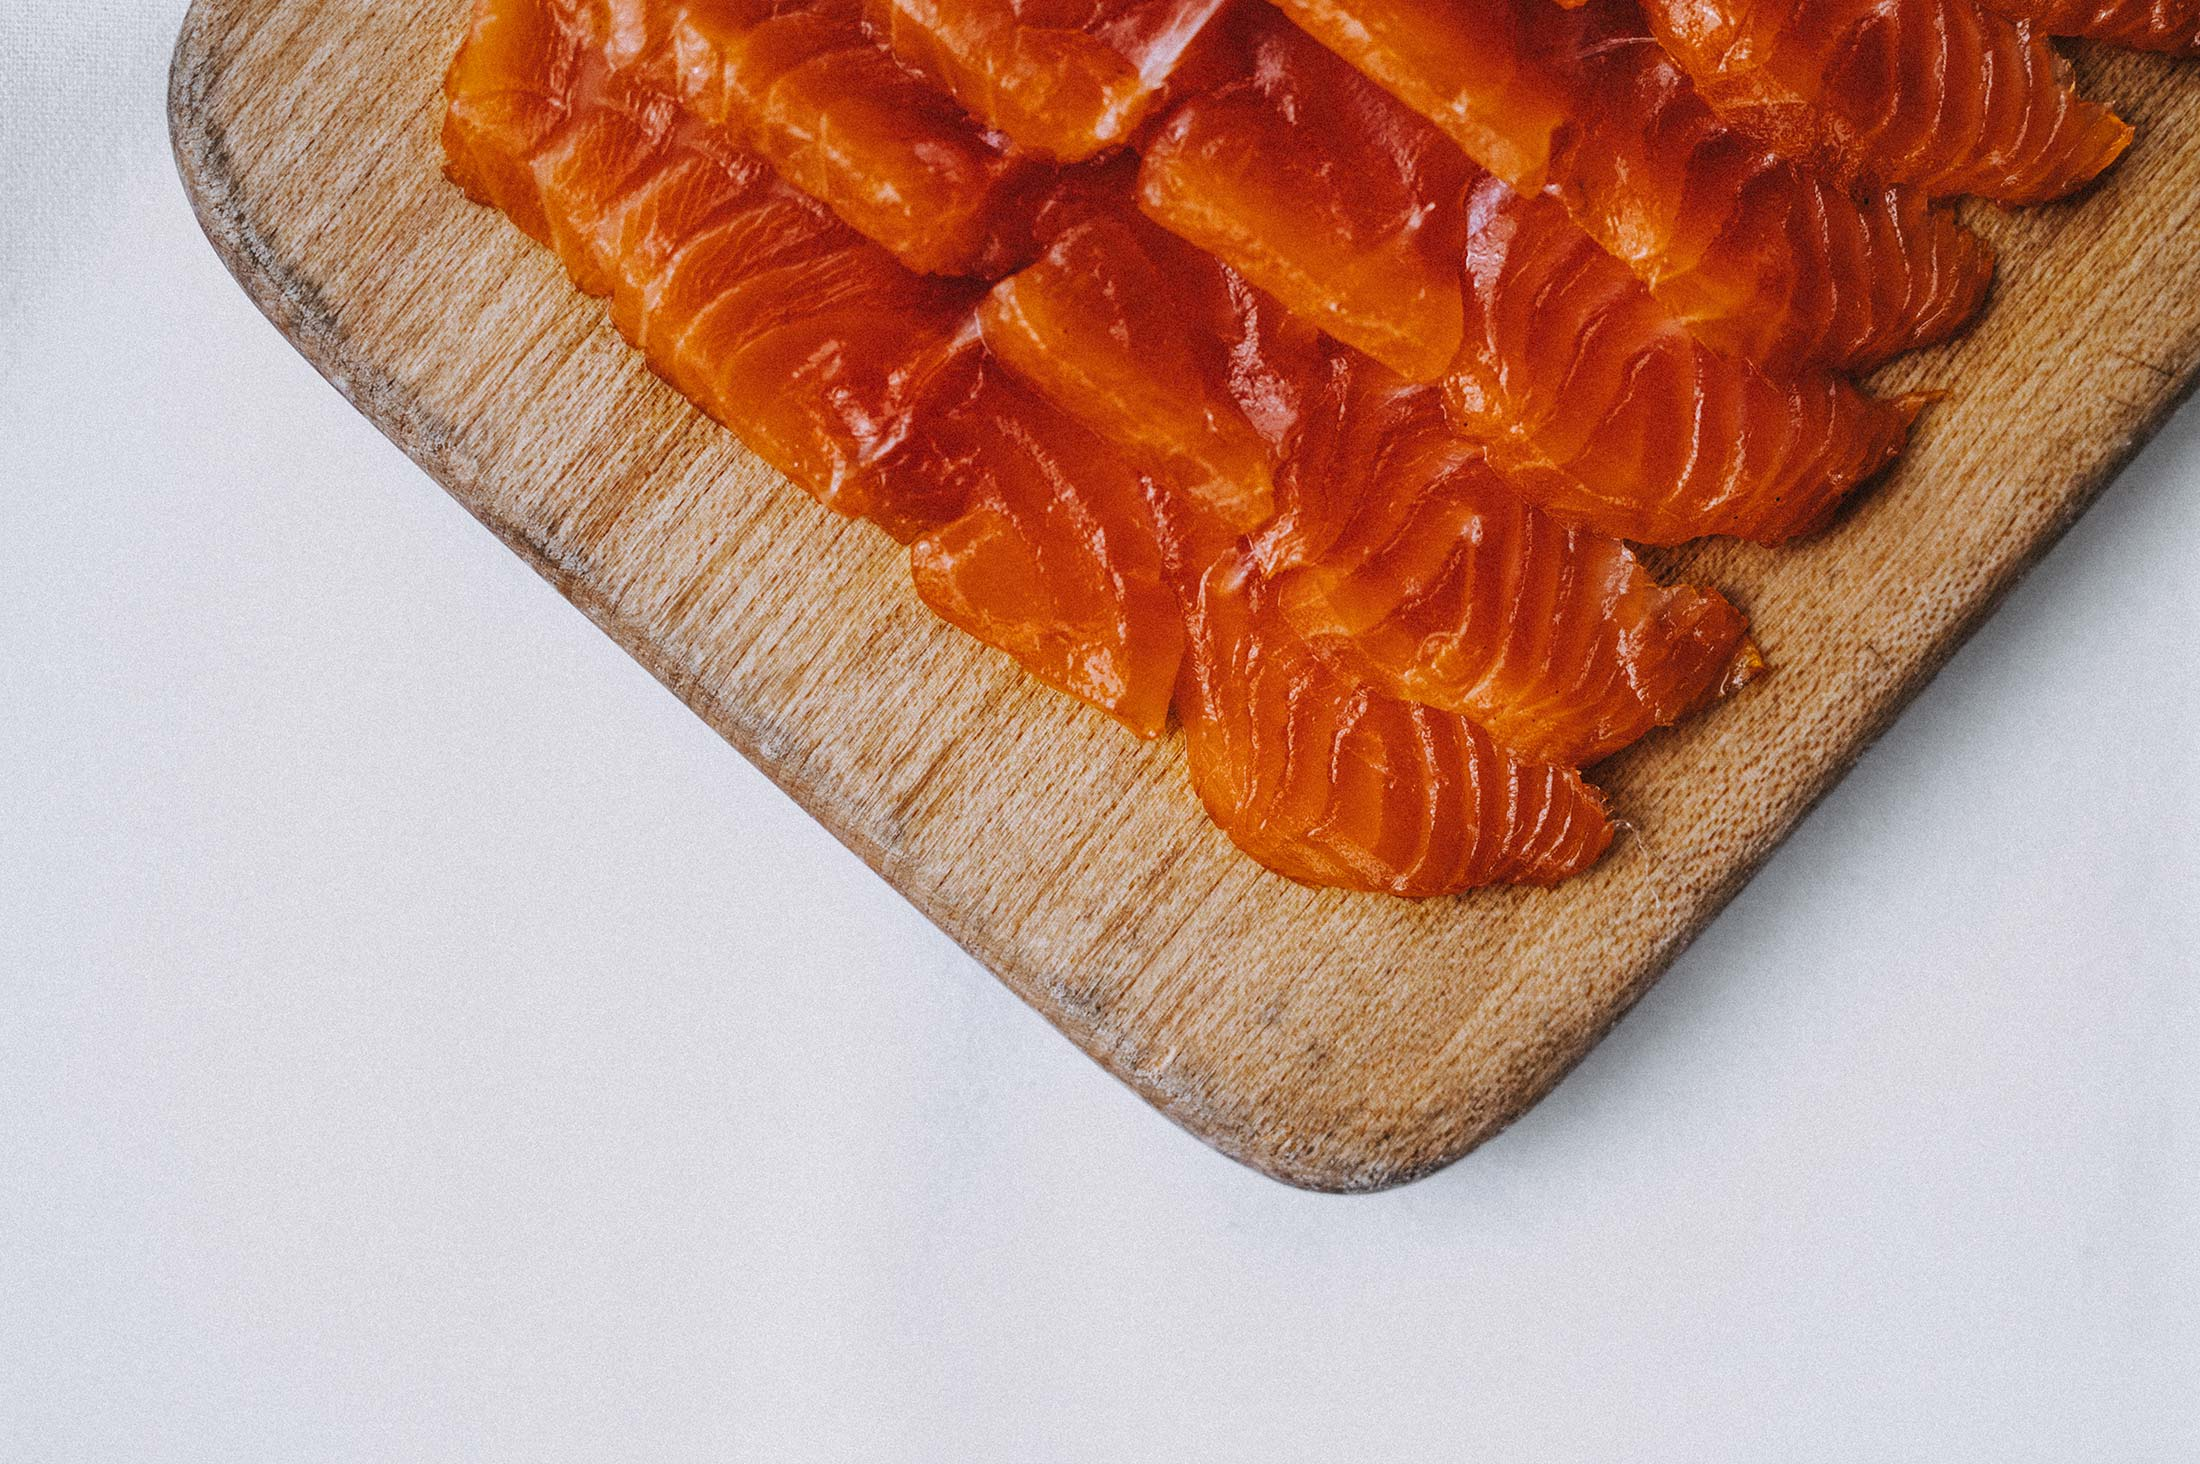 De Beauvoir smoked salmon